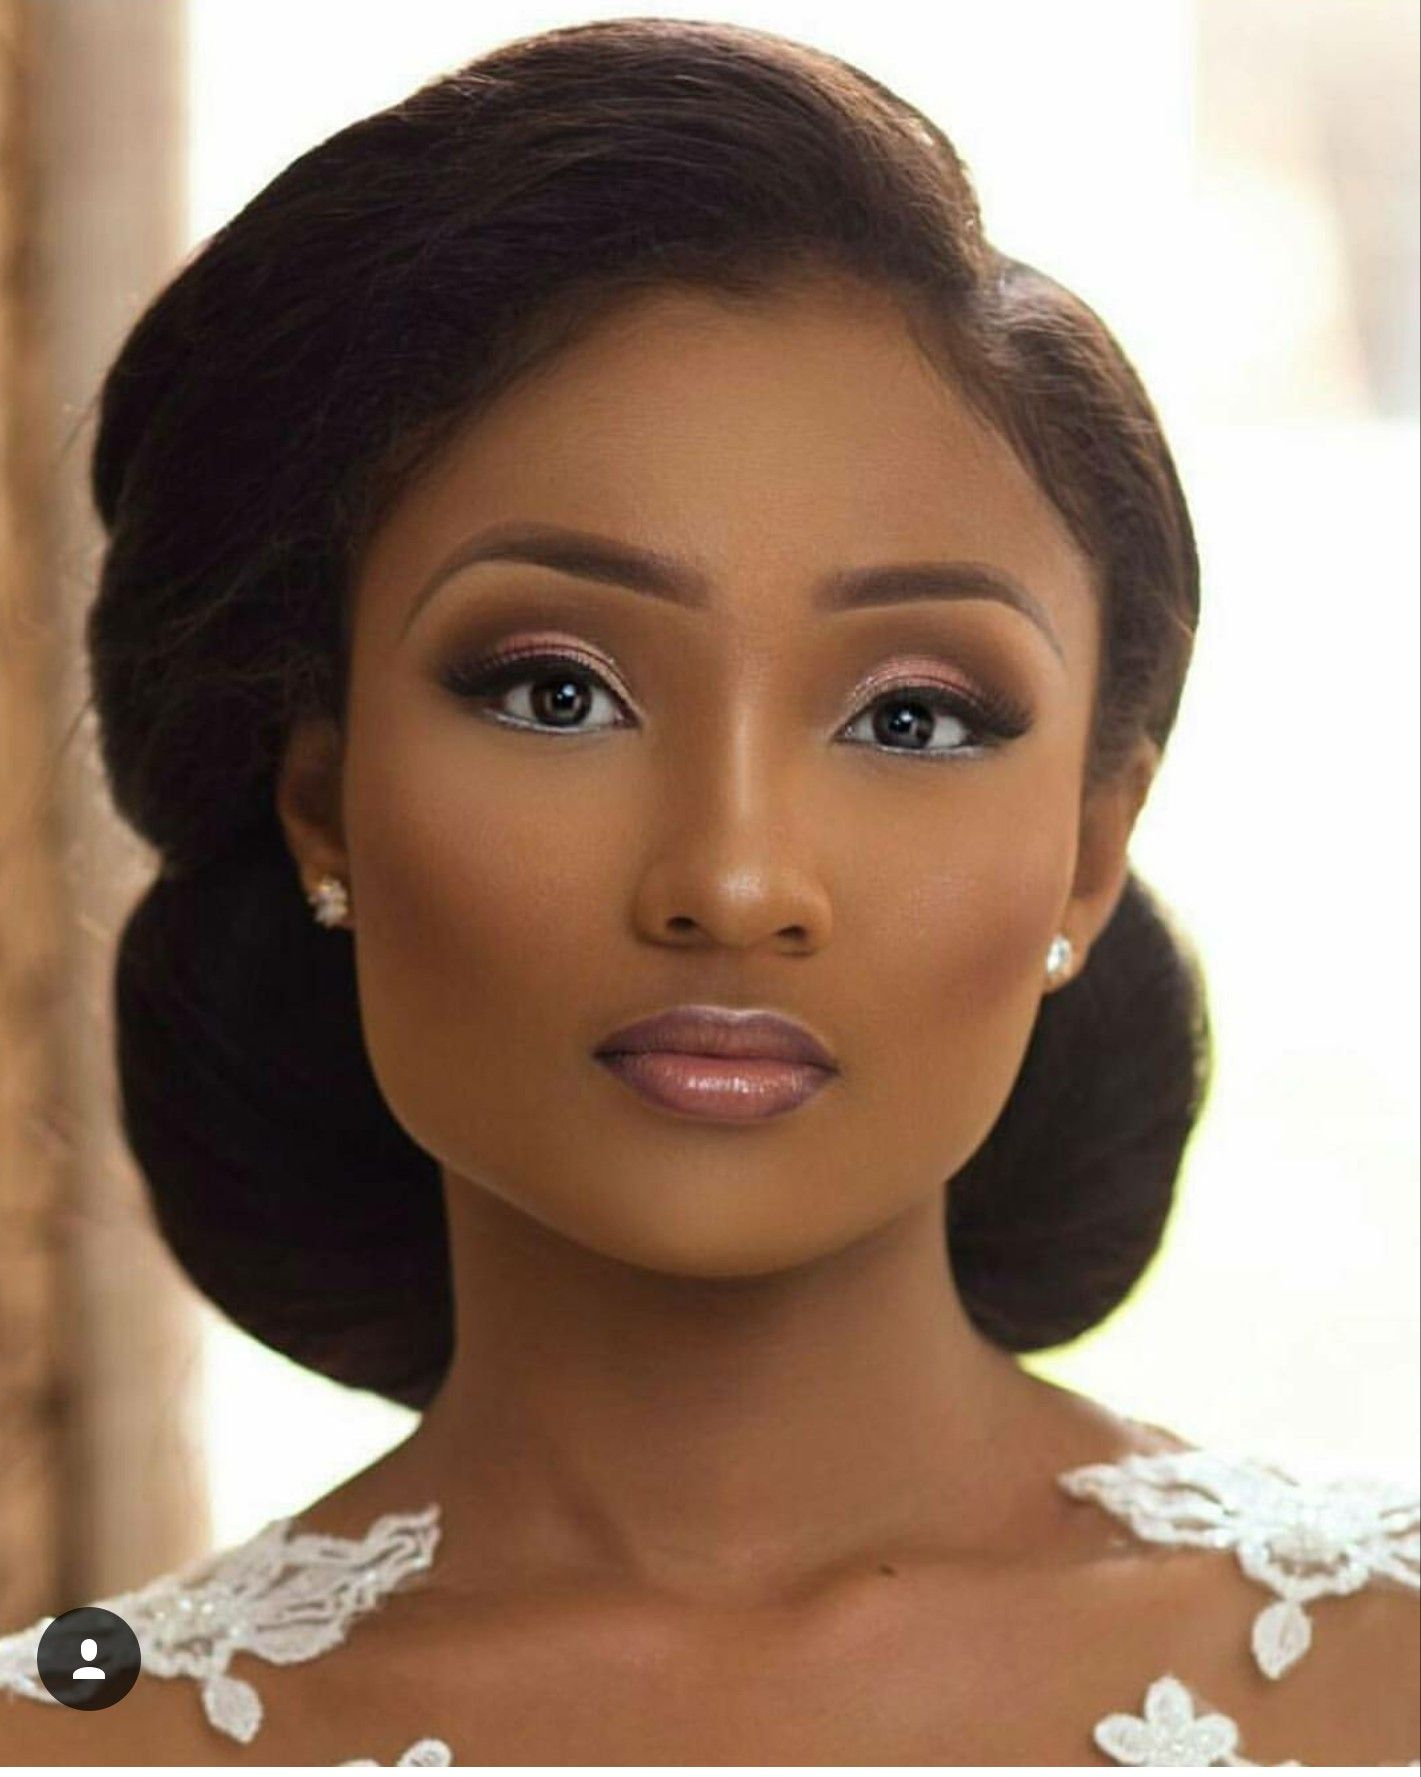 Pin by Brittany on To Wed Bridal makeup looks, Bride makeup